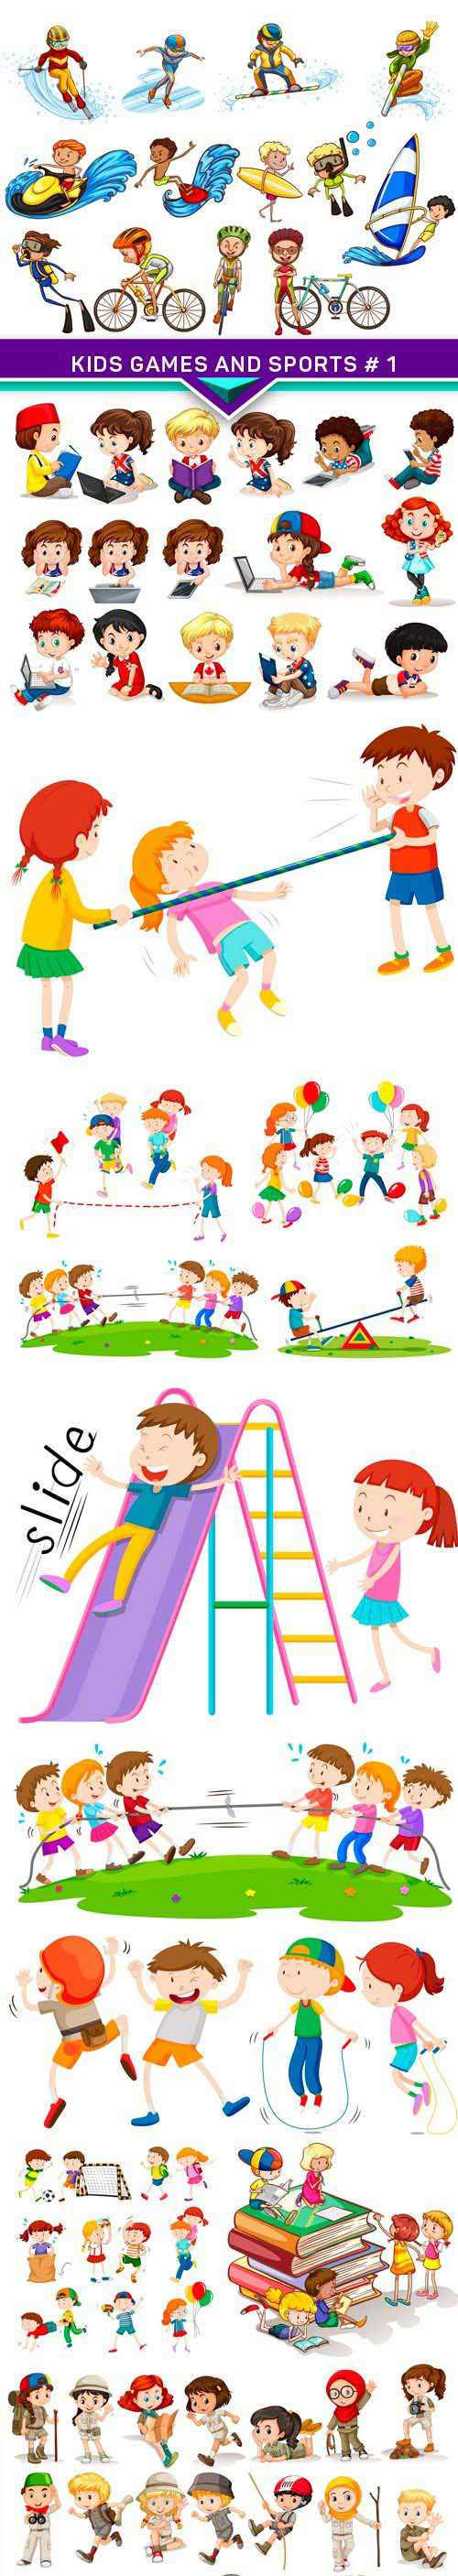 Kids Games and Sports #1 10x EPS